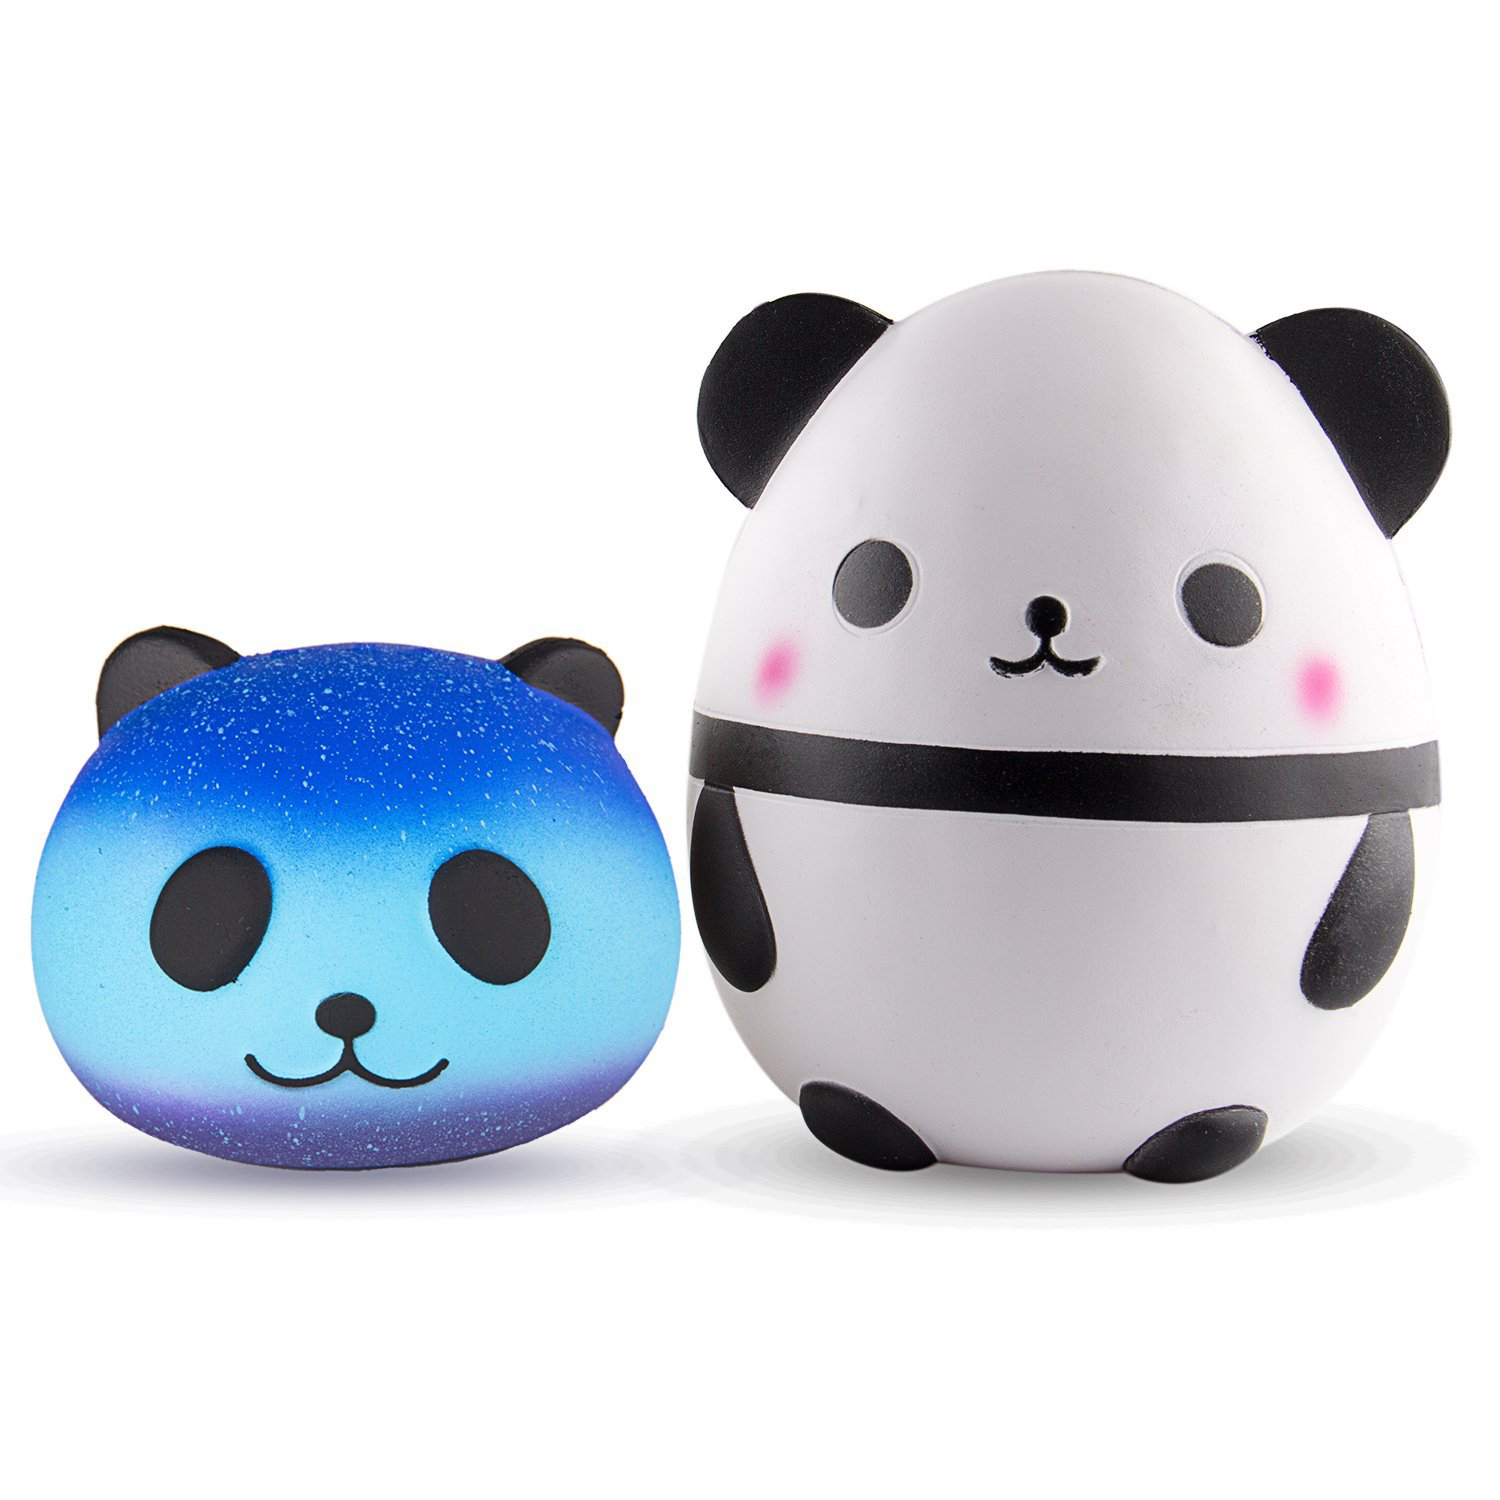 HOT SALE Cute Panda Egg with Star Panda Head Cream Scented Easter Squishy Very Slow Rising Kids Toys